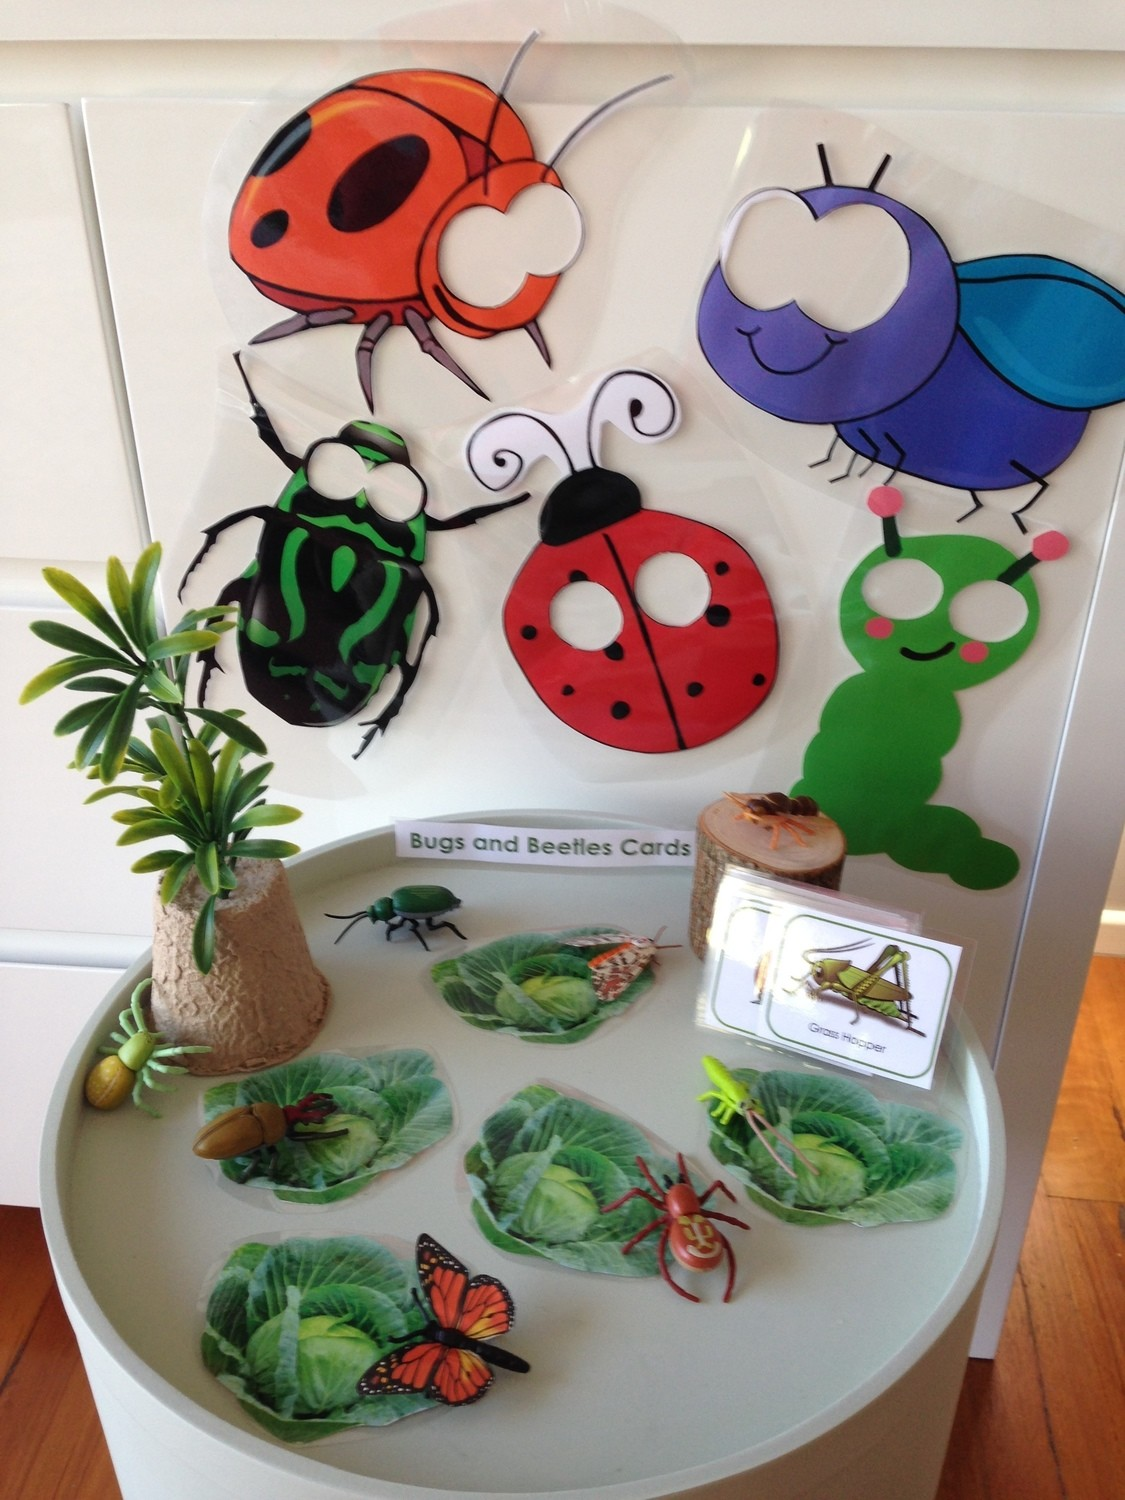 SONGS AND PROPS - Bugs and Beetles in my Garden Song